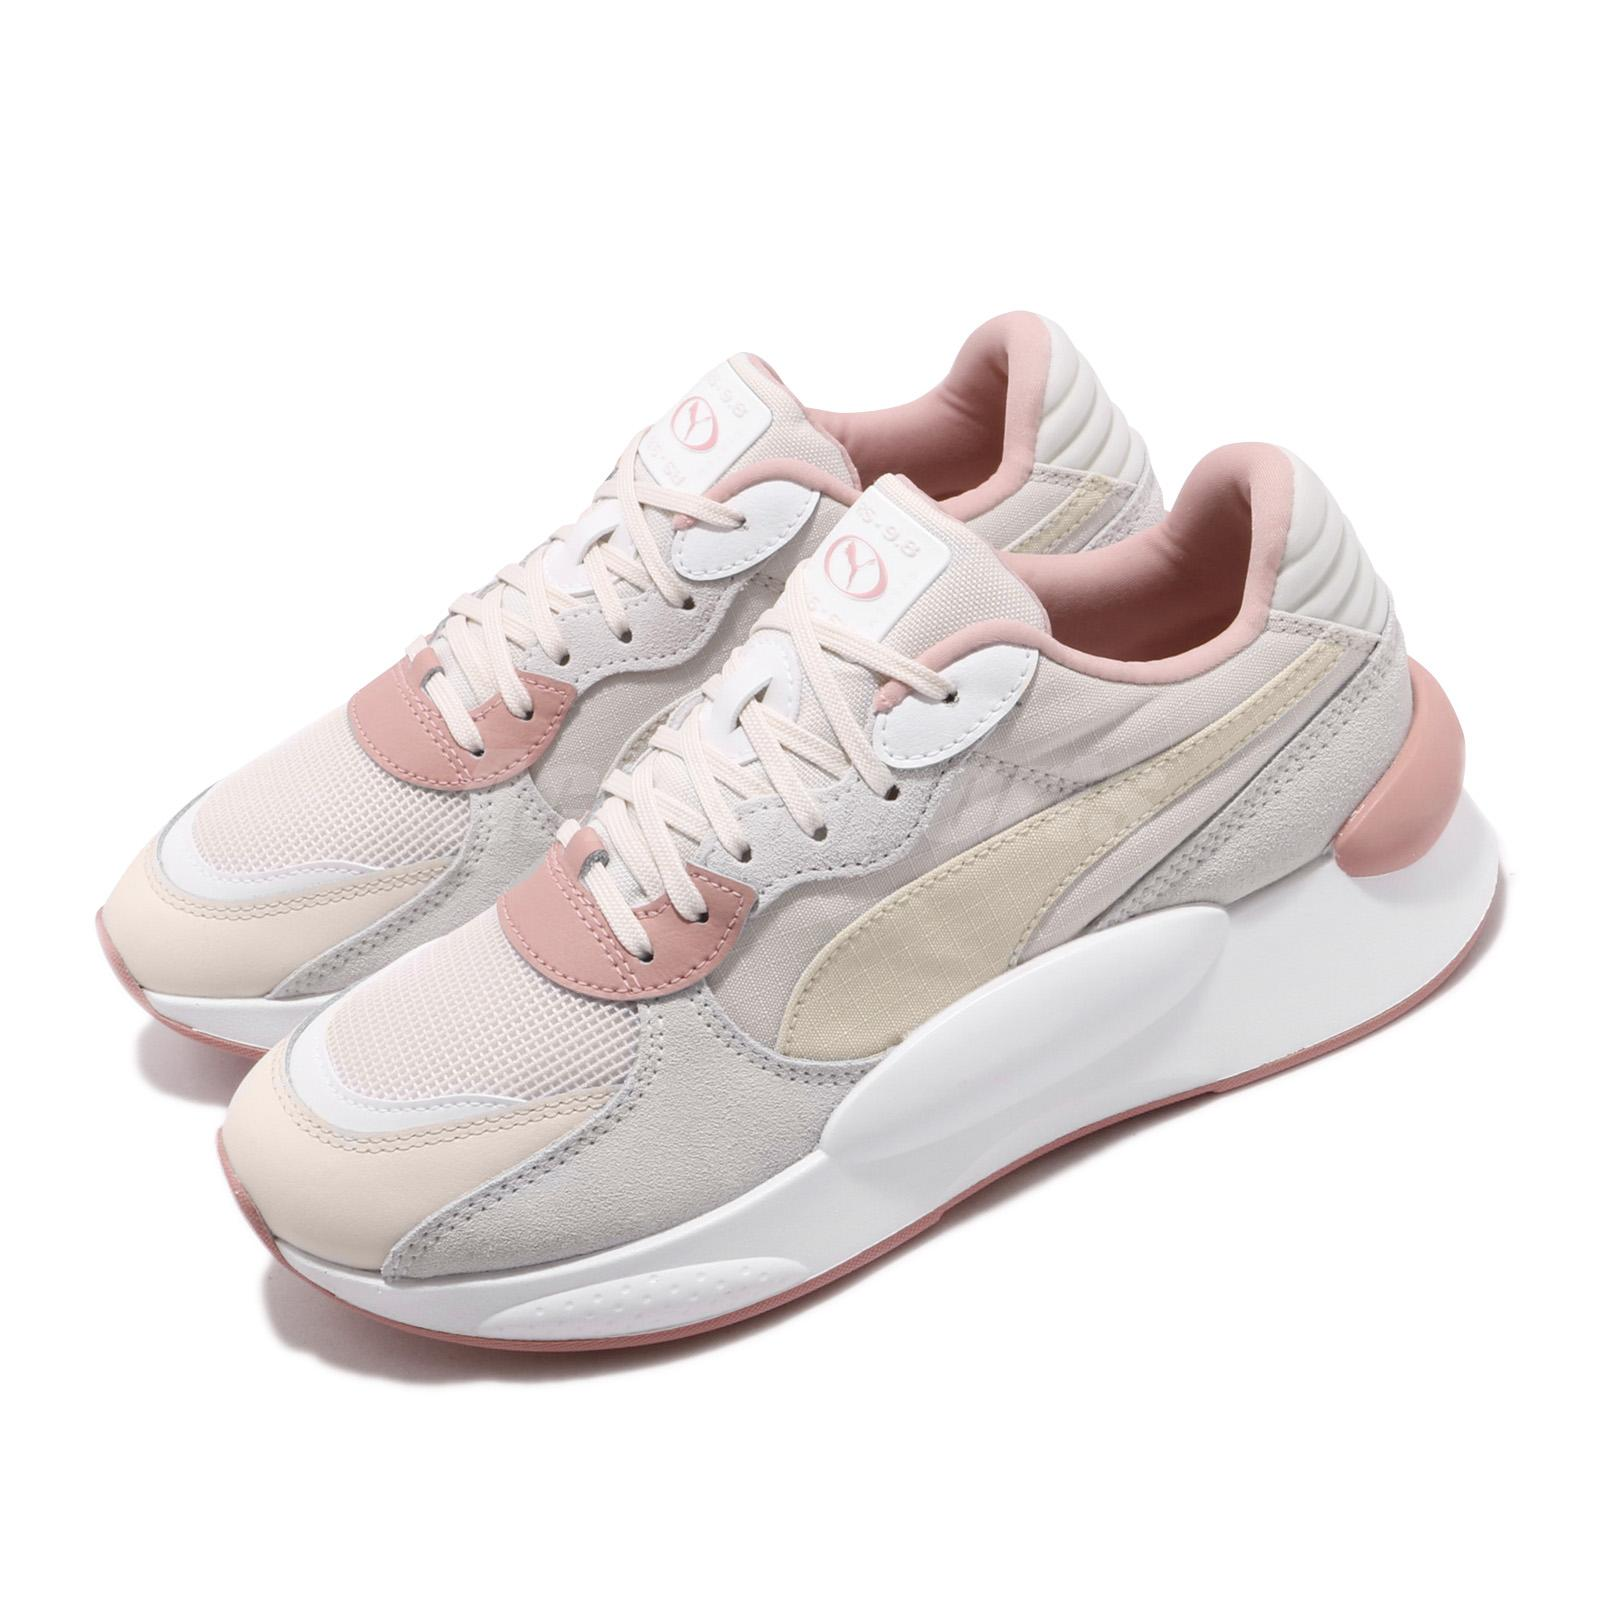 Puma RS 9.8 Space Beige White Pink